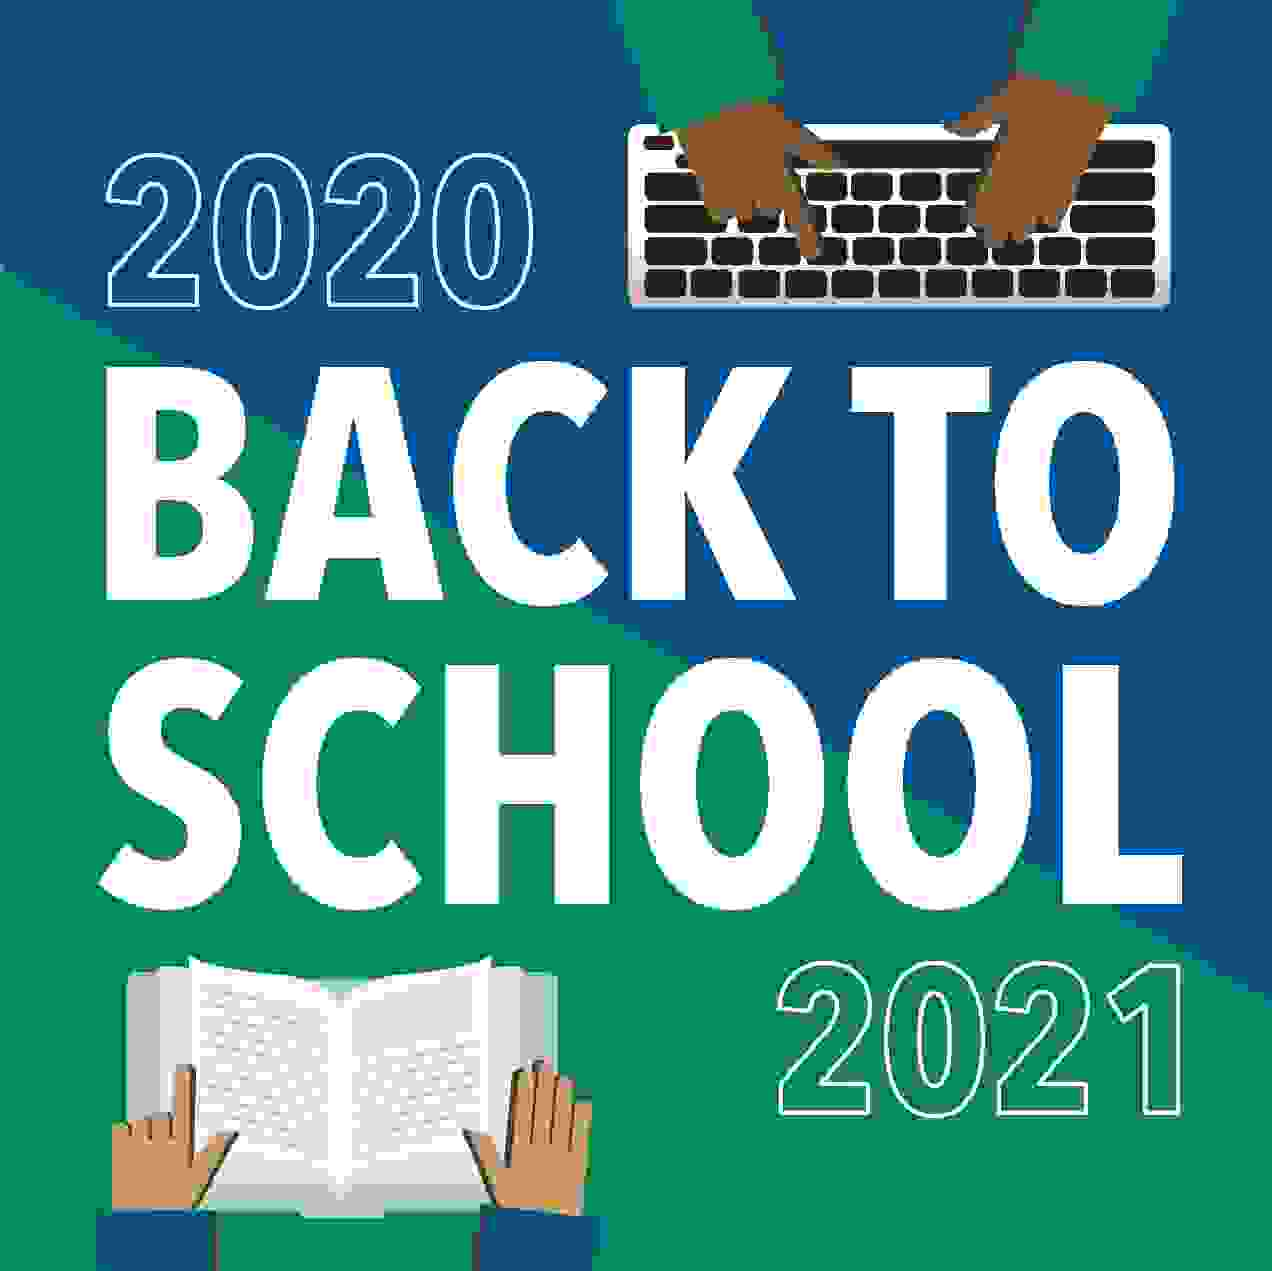 image says welcome back to school 2020-2021